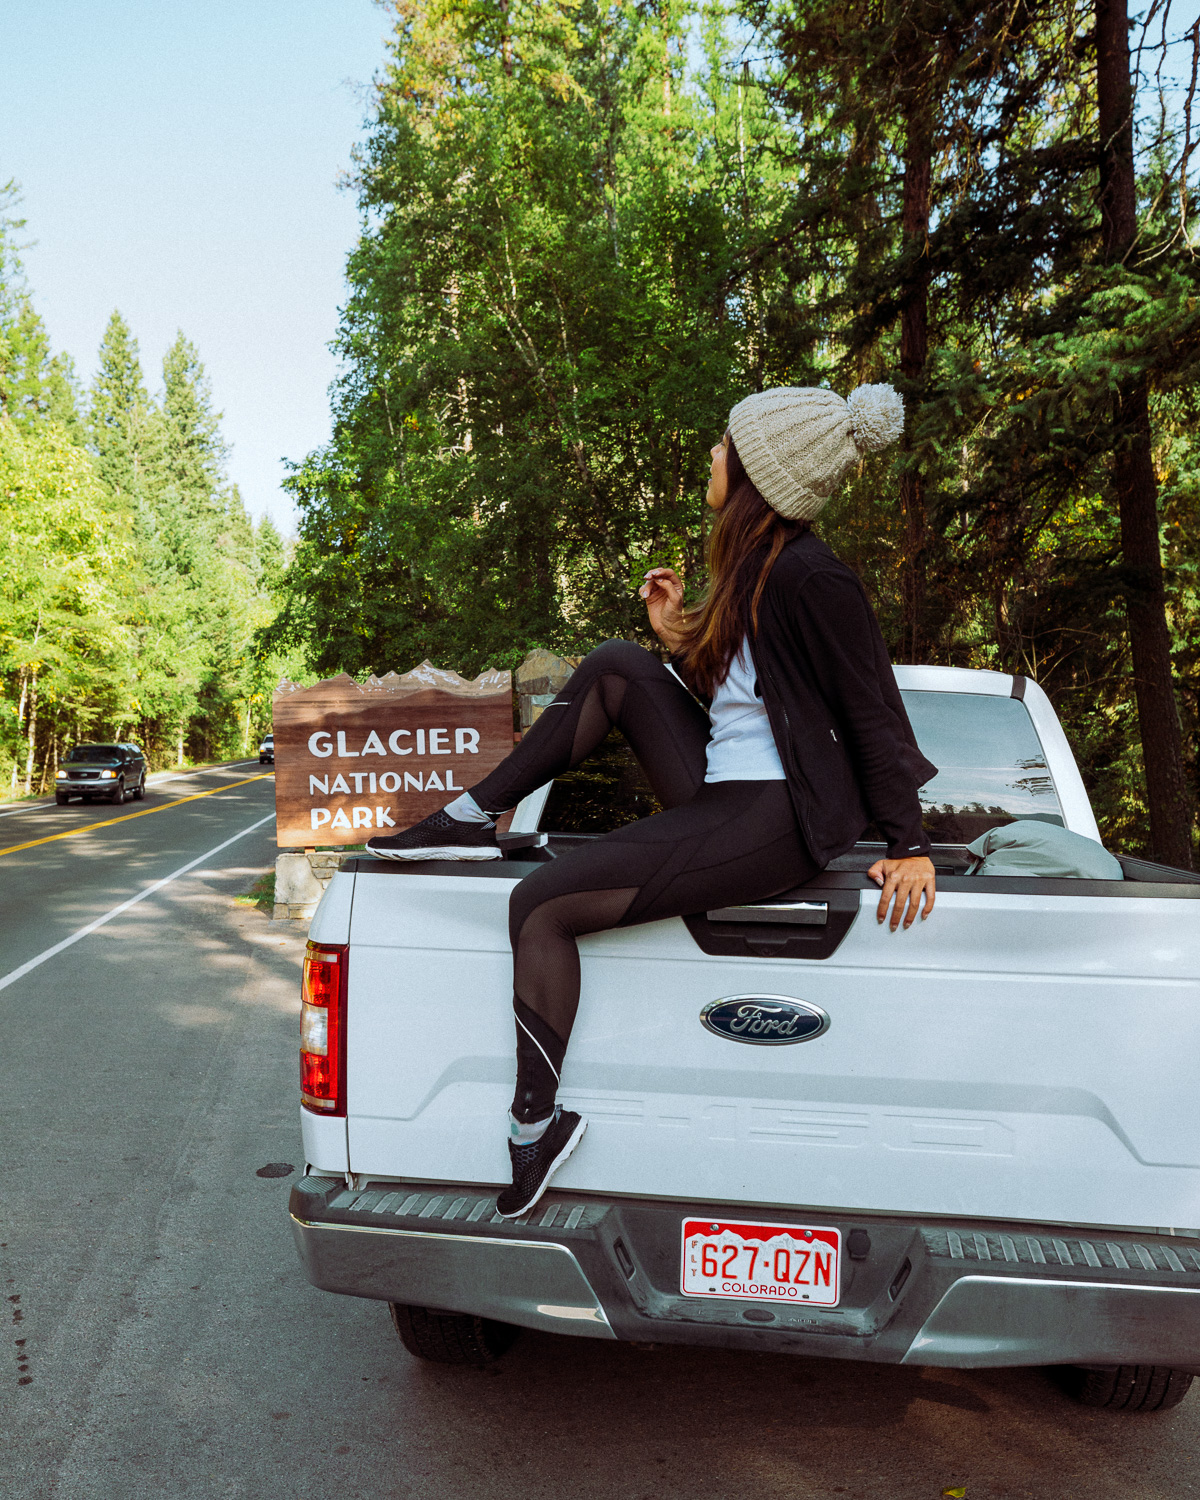 Rachel Off Duty: A Woman Sits in Front of the Glacier National Park Sign